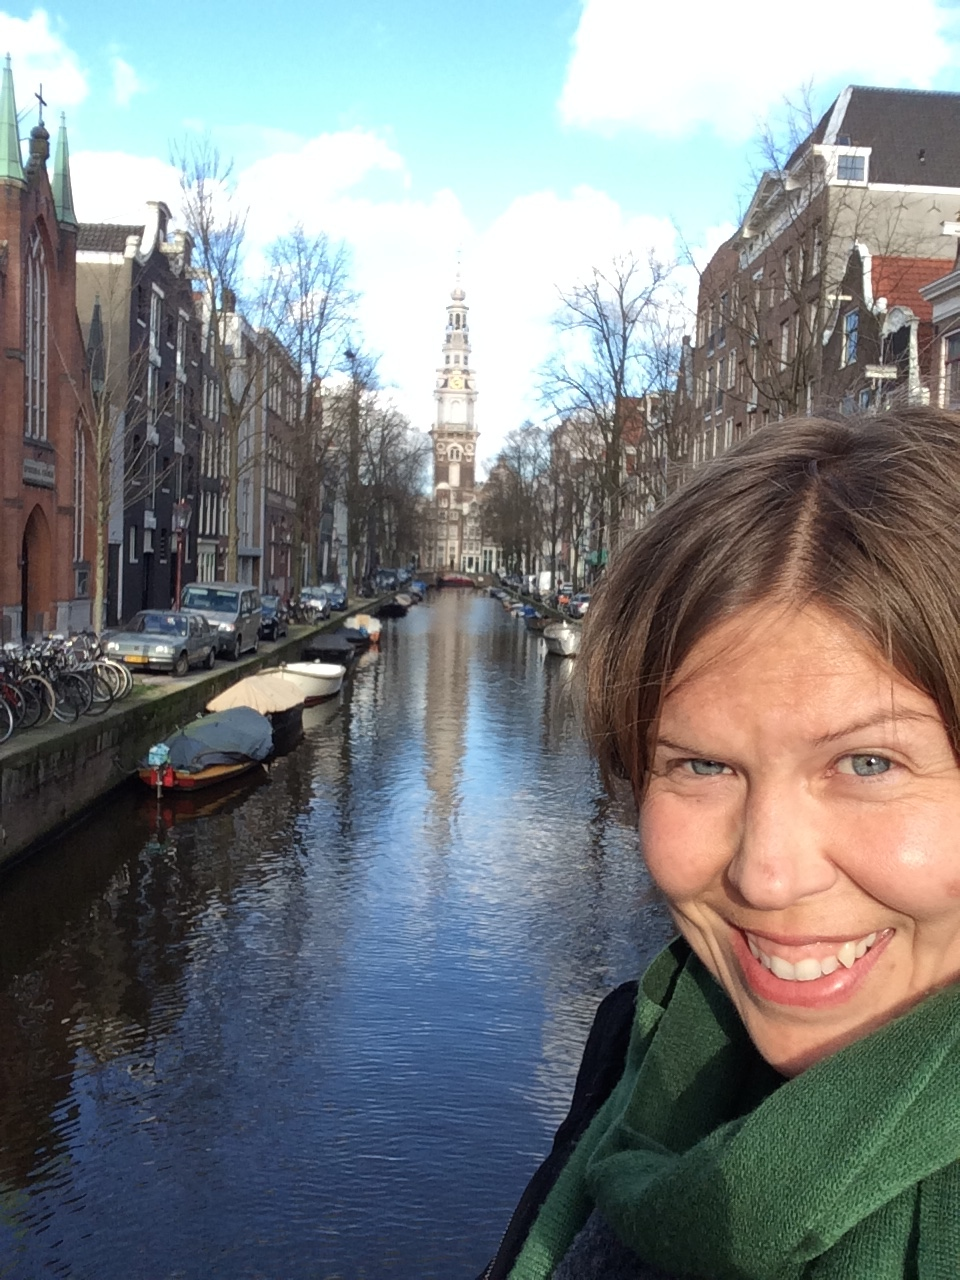 Amsterdam and I - A love story